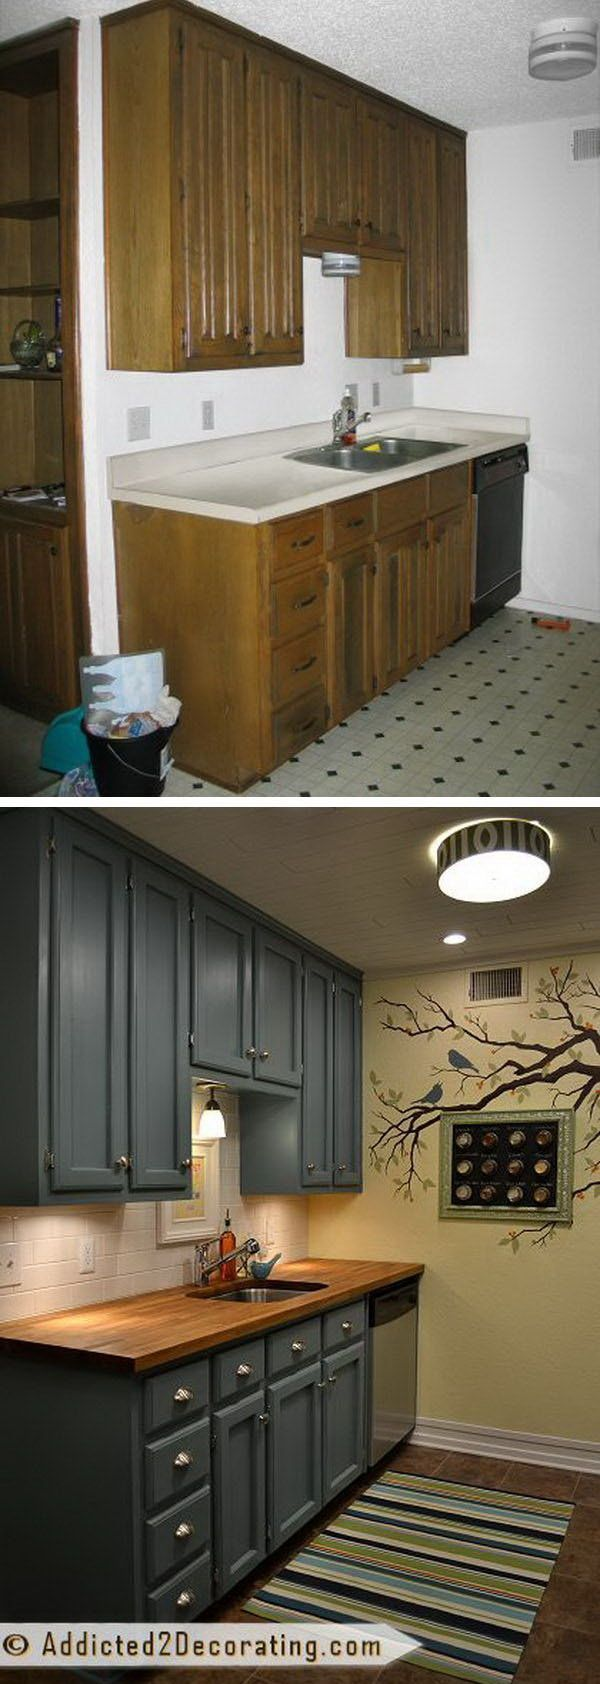 Best 25+ Budget decorating ideas on Pinterest | Diy apartment ...